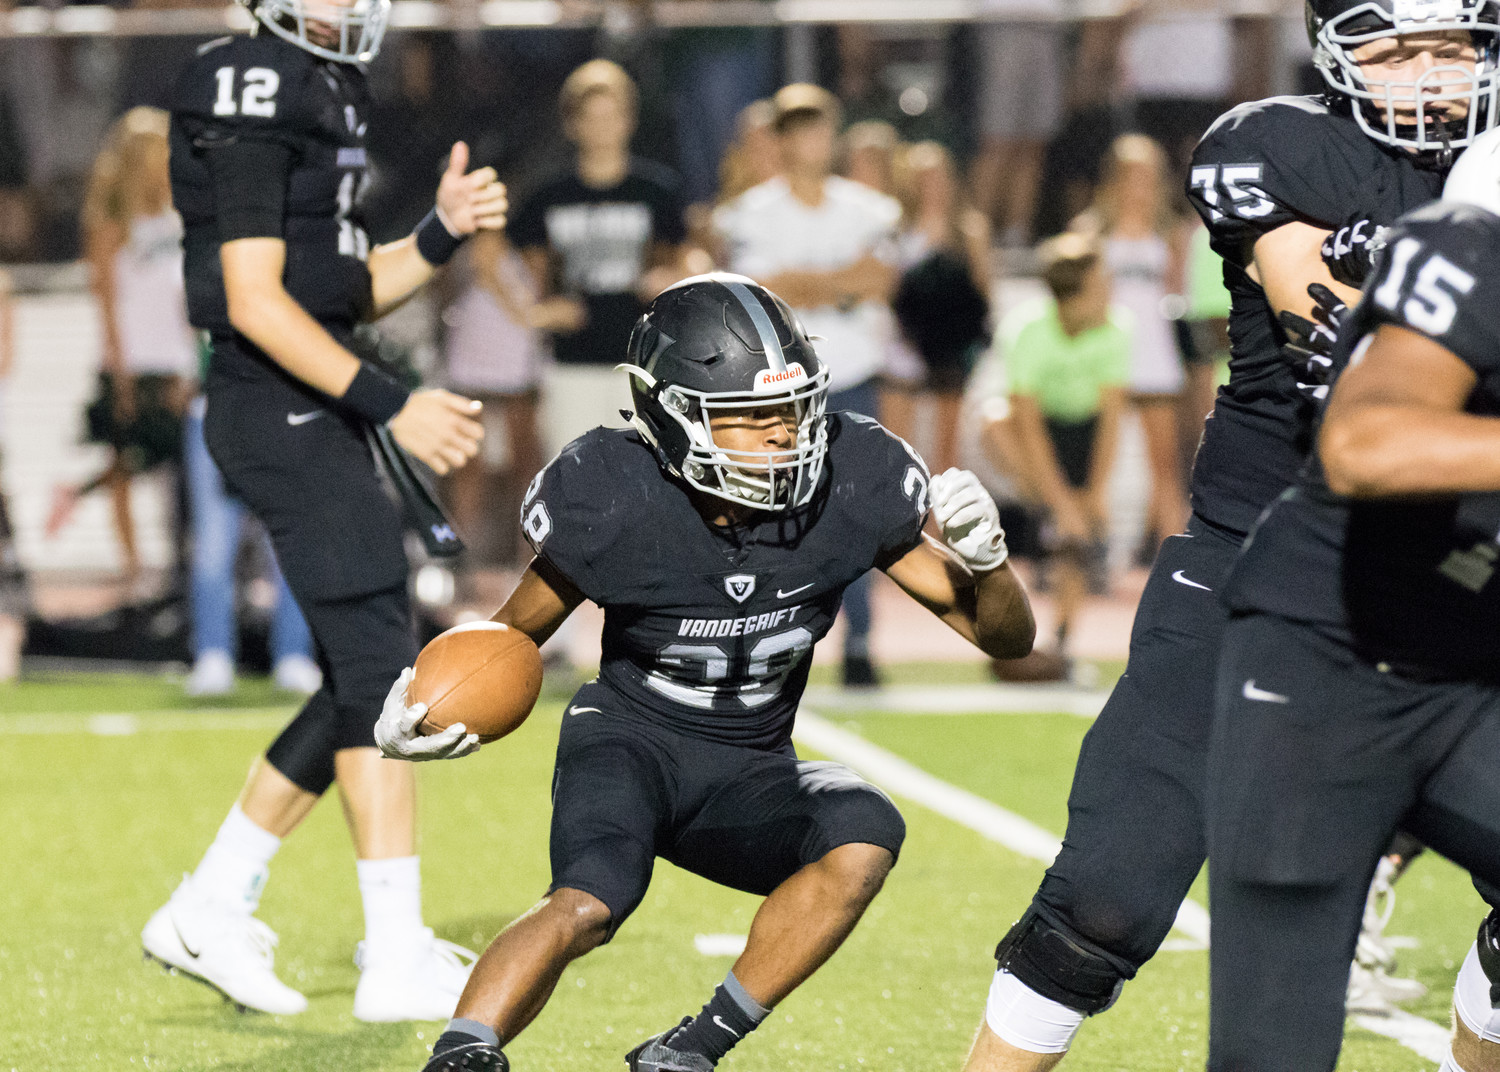 Vandegrift Vipers senior running back Mack Brown (28) gets low on a running play during a high school football game between Vandegrift and Cedar Park at Monroe Stadium in Austin, Texas on Friday, September 8, 2017.